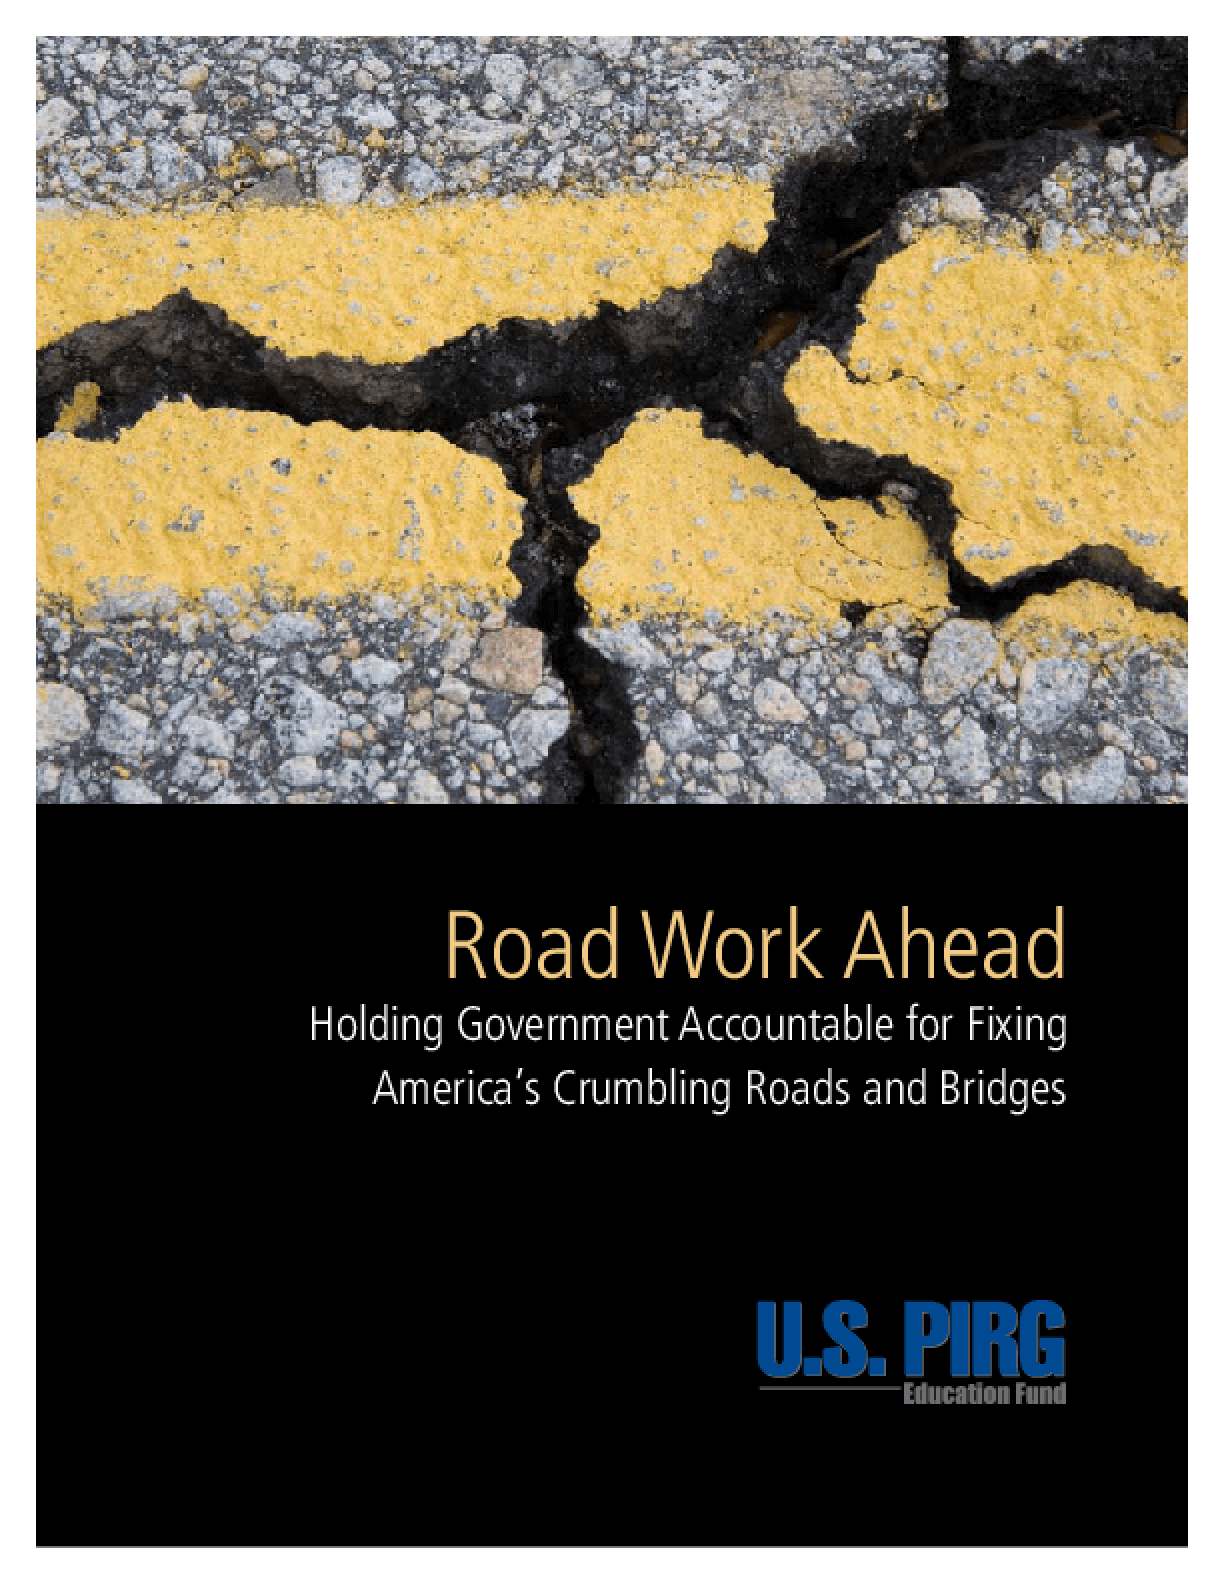 Road Work Ahead: Holding Government Accountable for Fixing America's Crumbling Roads and Bridges